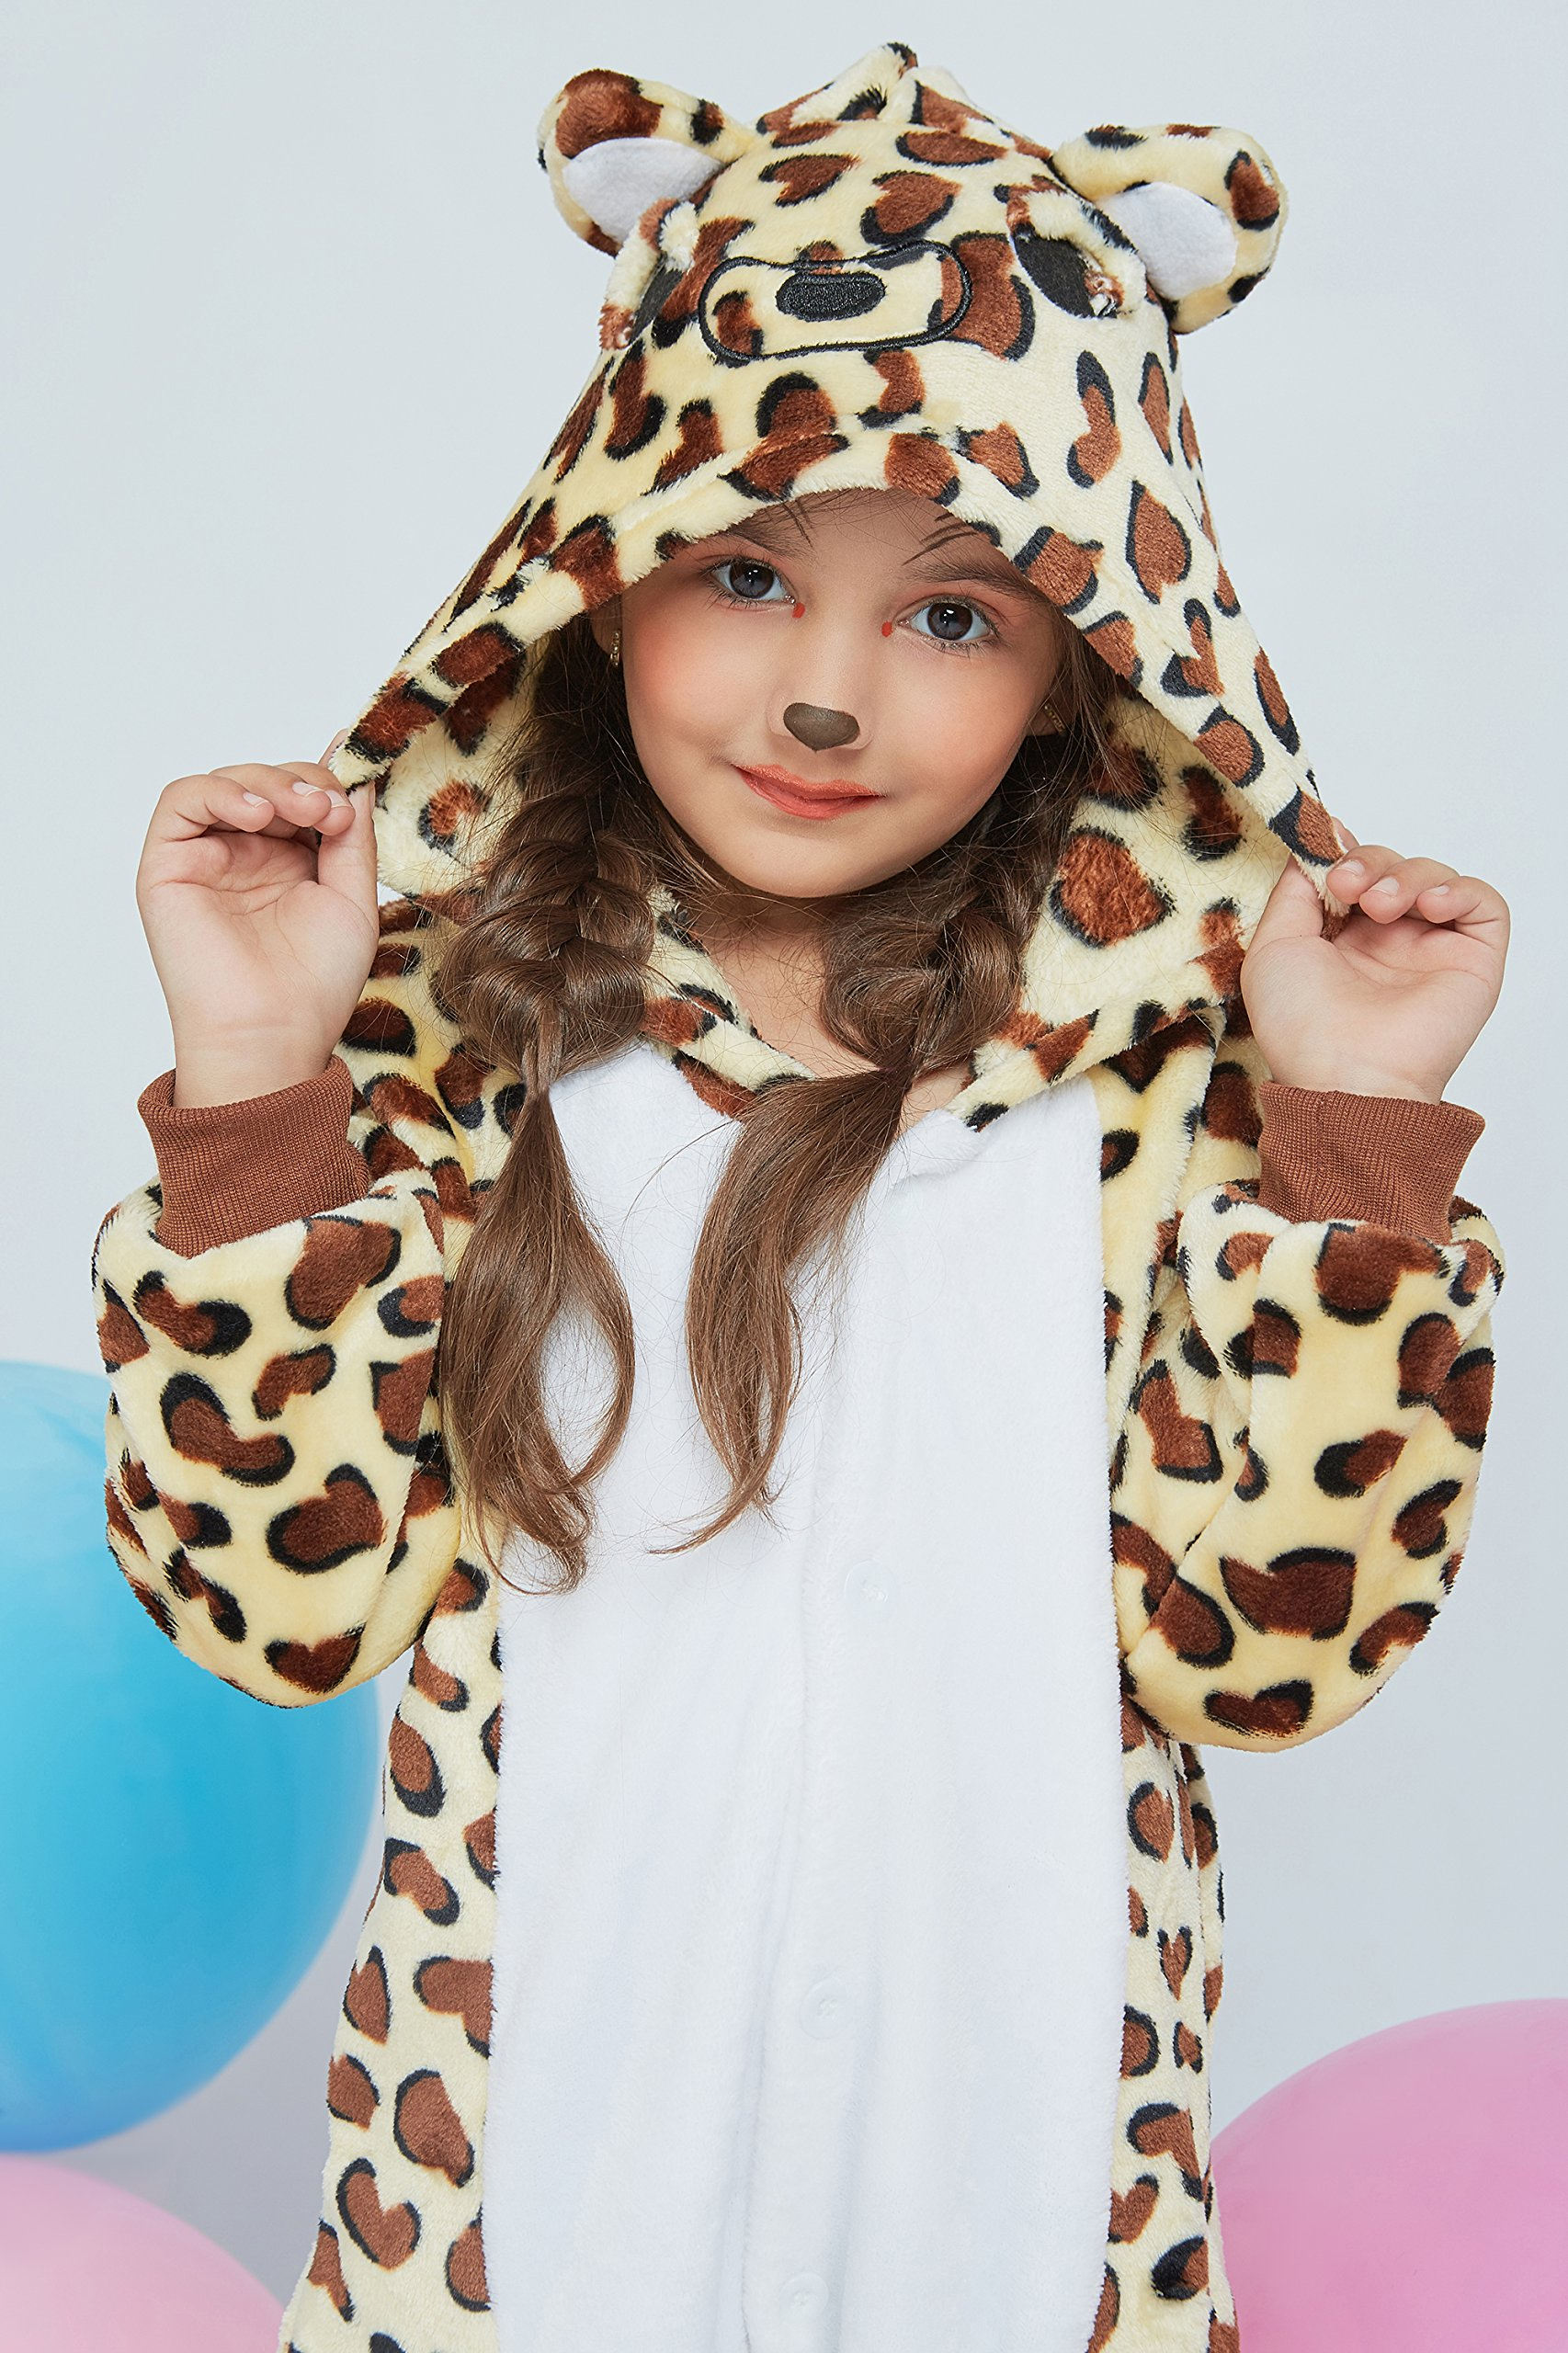 Kids Leopard Kigurumi Animal Onesie Pajamas Plush Onsie One Piece Cosplay Costume (Yellow, Brown, White) by Nothing But Love (Image #7)